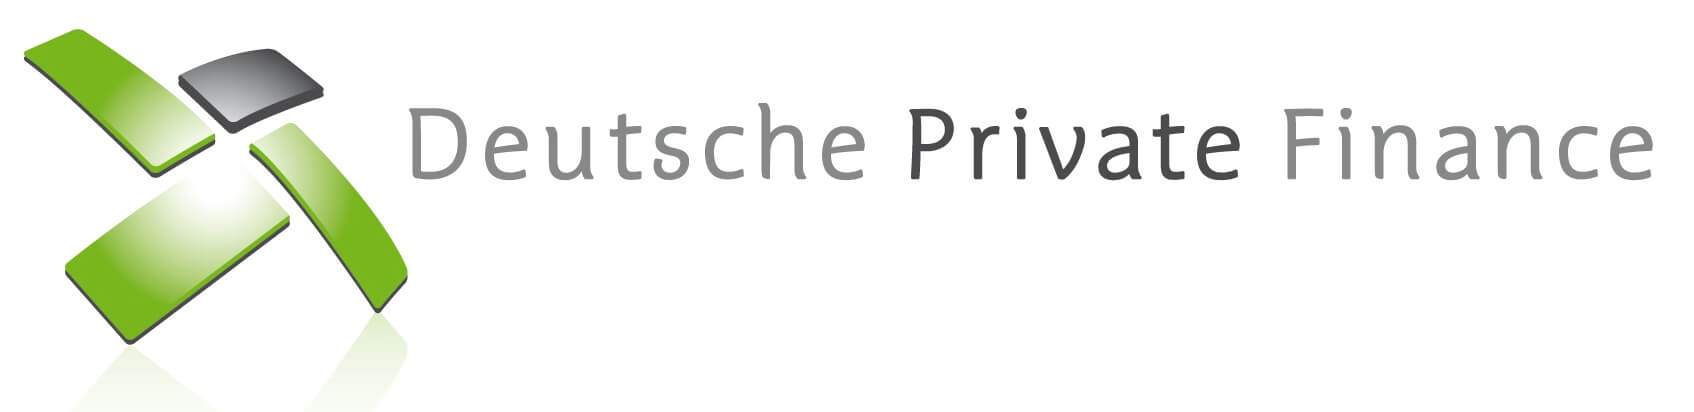 DPF - Deutsche Private Finance